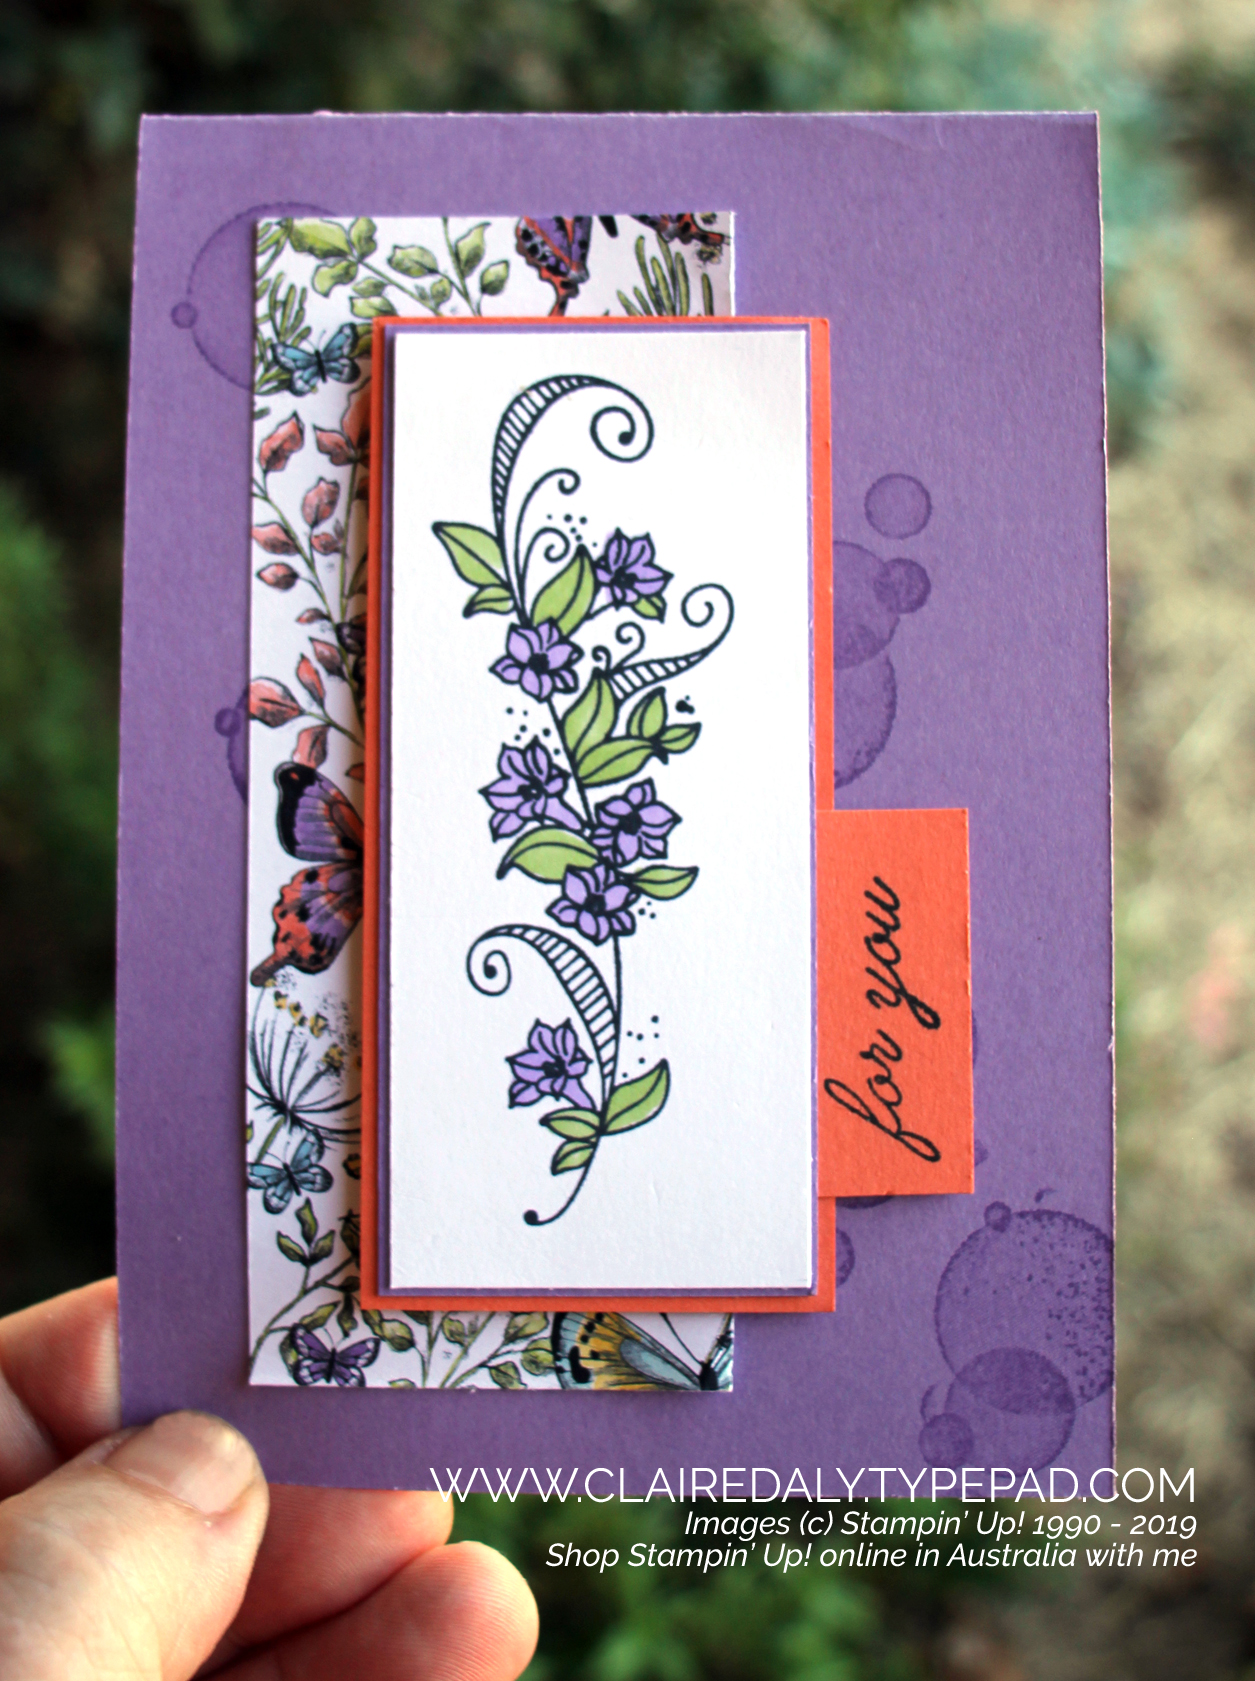 2019 Occasions Catalogue - Stampin' Up! Australia: Claire Daly